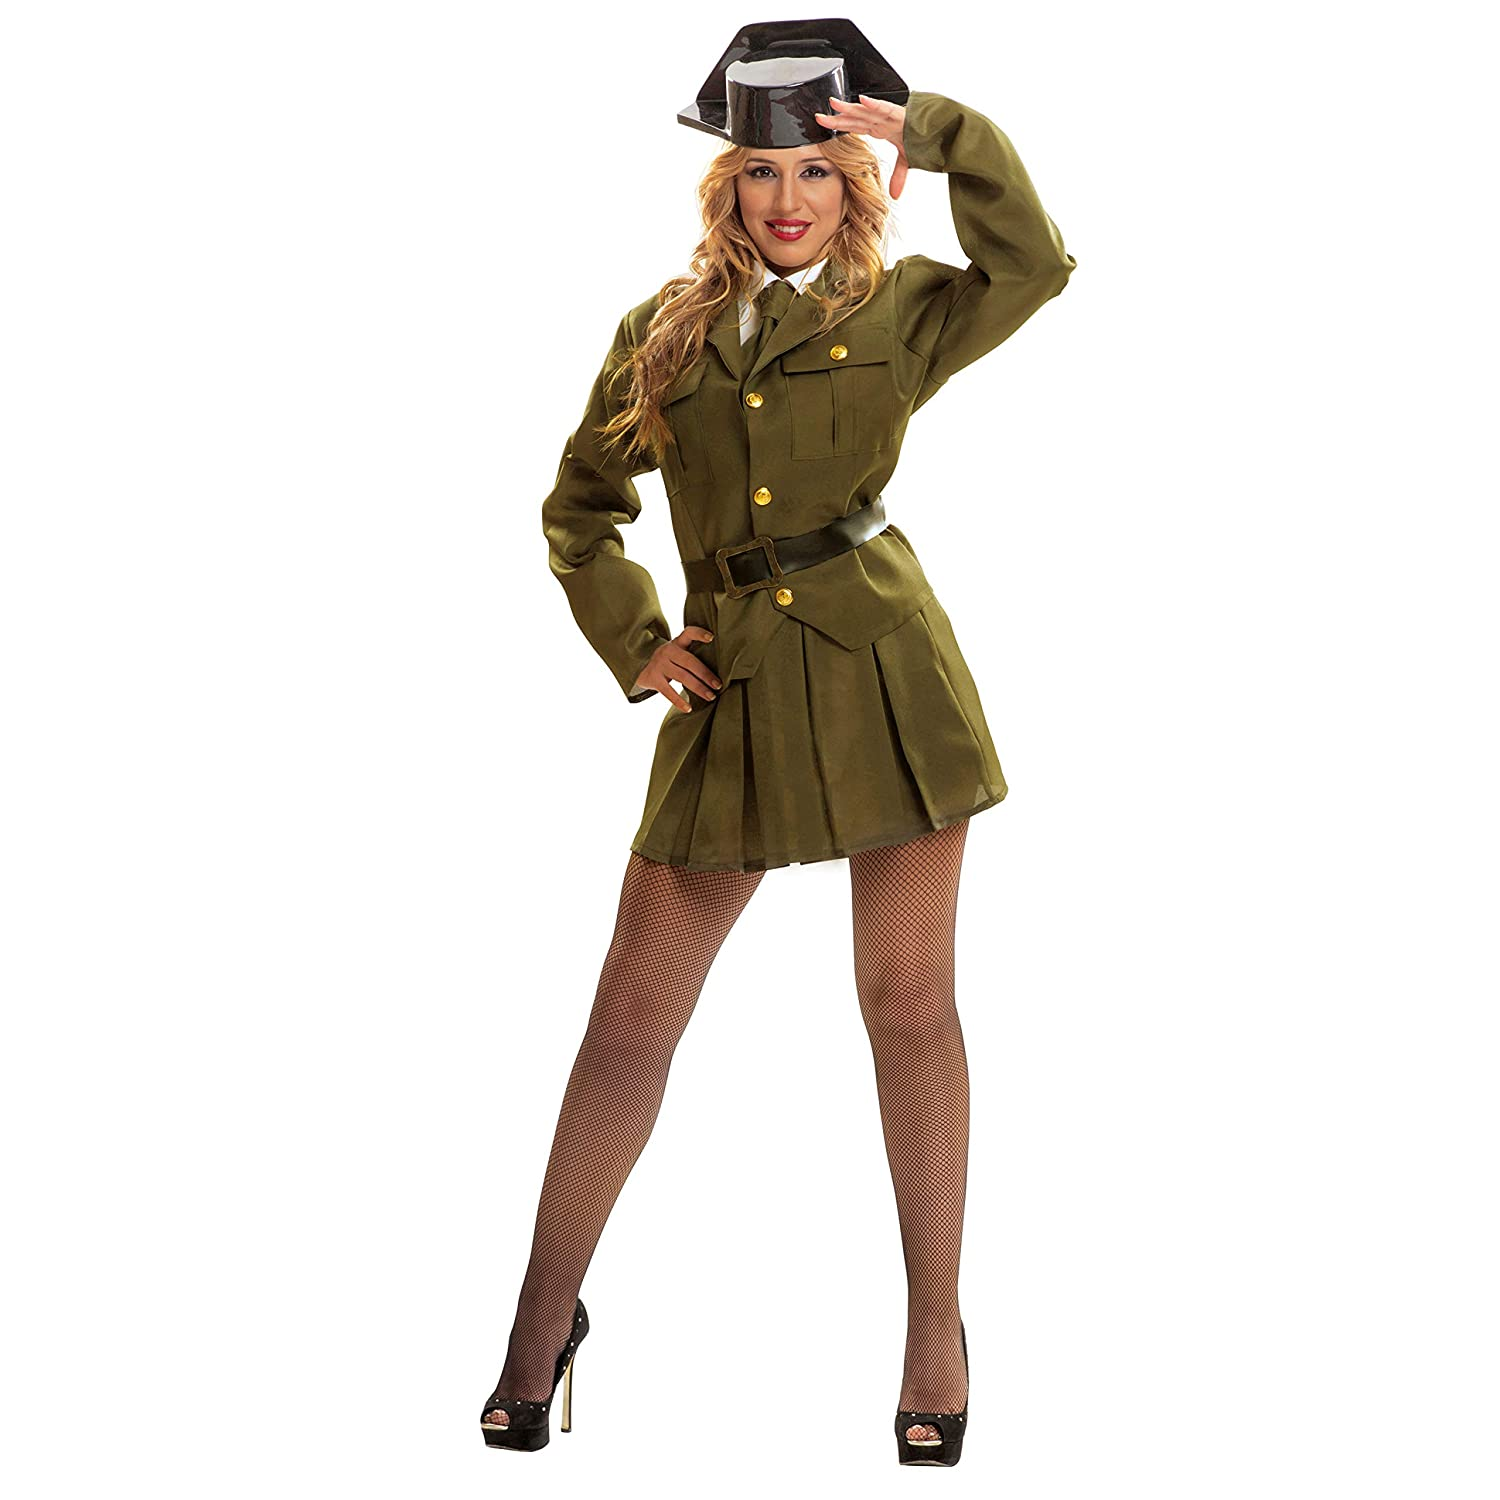 My Other Me Me - Disfraz de Guardia civil para mujer, talla ML (Viving Costumes MOM00984)